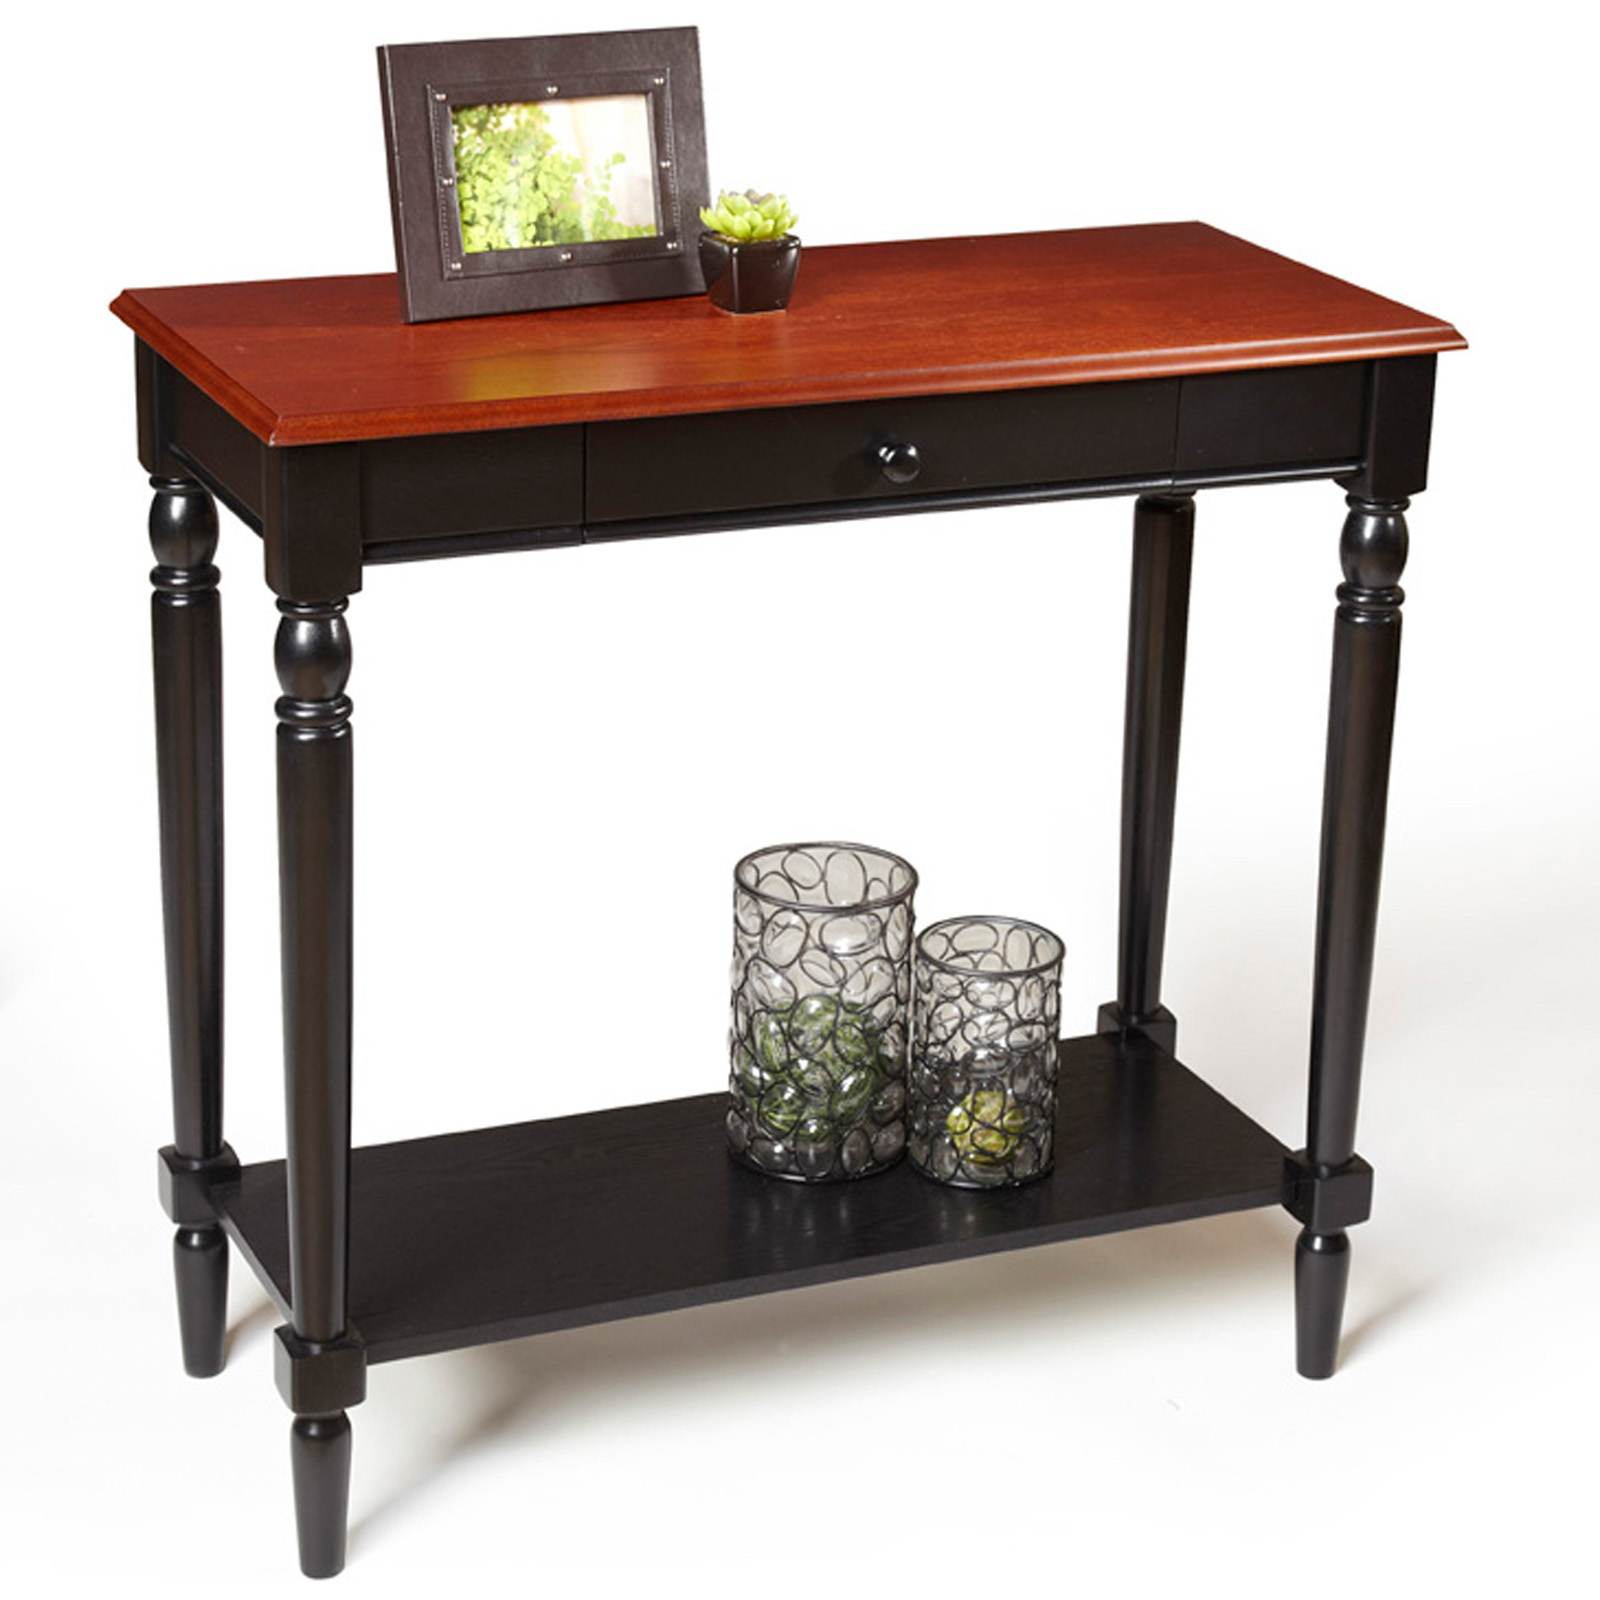 Foyer Table With Drawers : Convenience concepts french country foyer table with